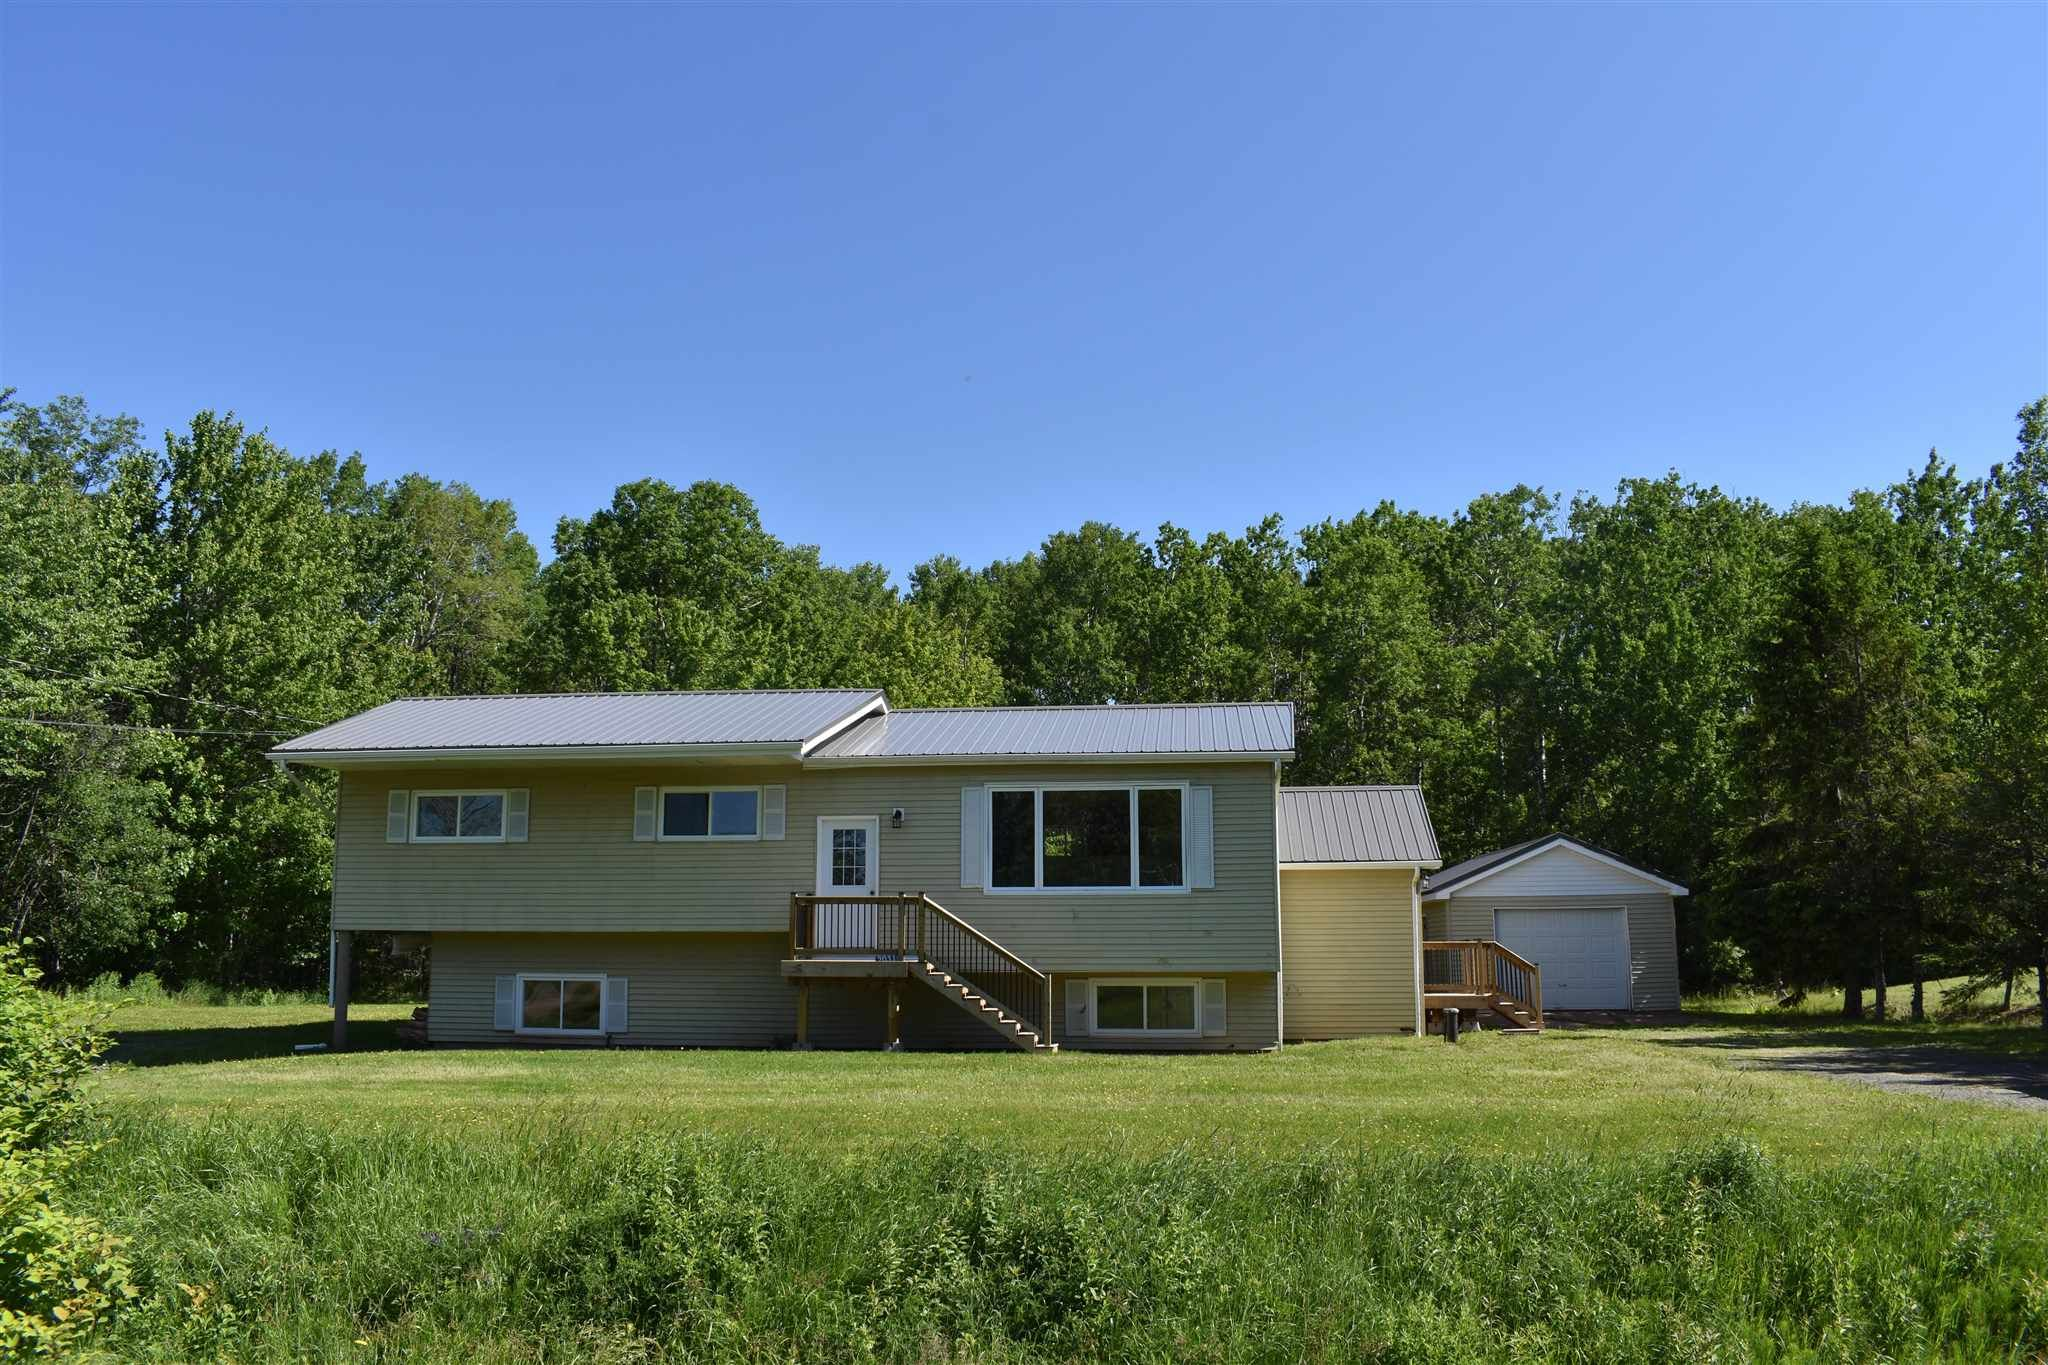 Main Photo: 2031 Athol Road in Athol Road: 102S-South Of Hwy 104, Parrsboro and area Residential for sale (Northern Region)  : MLS®# 202115709